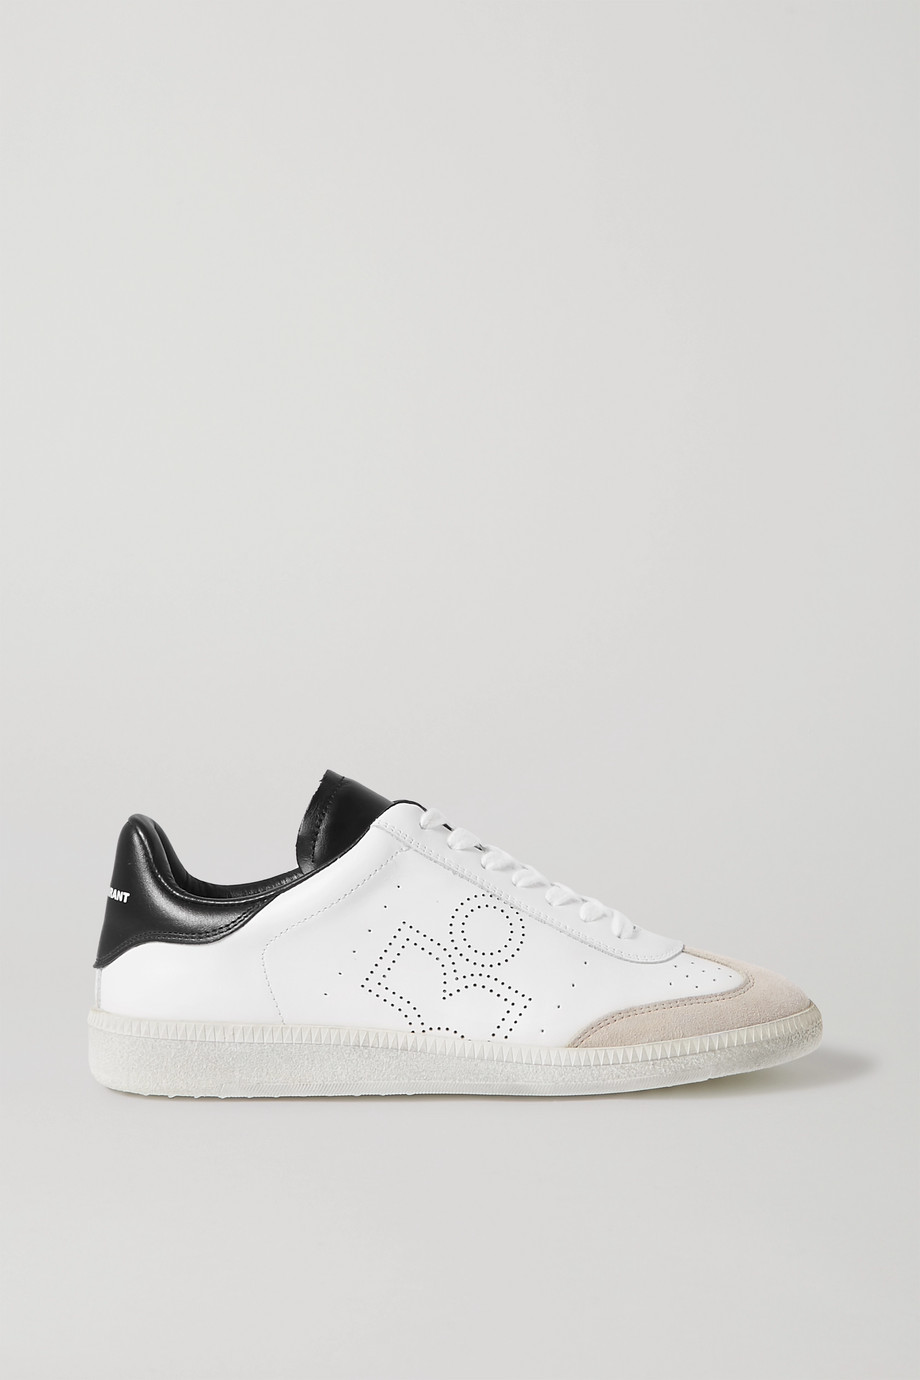 Isabel Marant Bryce suede-trimmed perforated leather sneakers